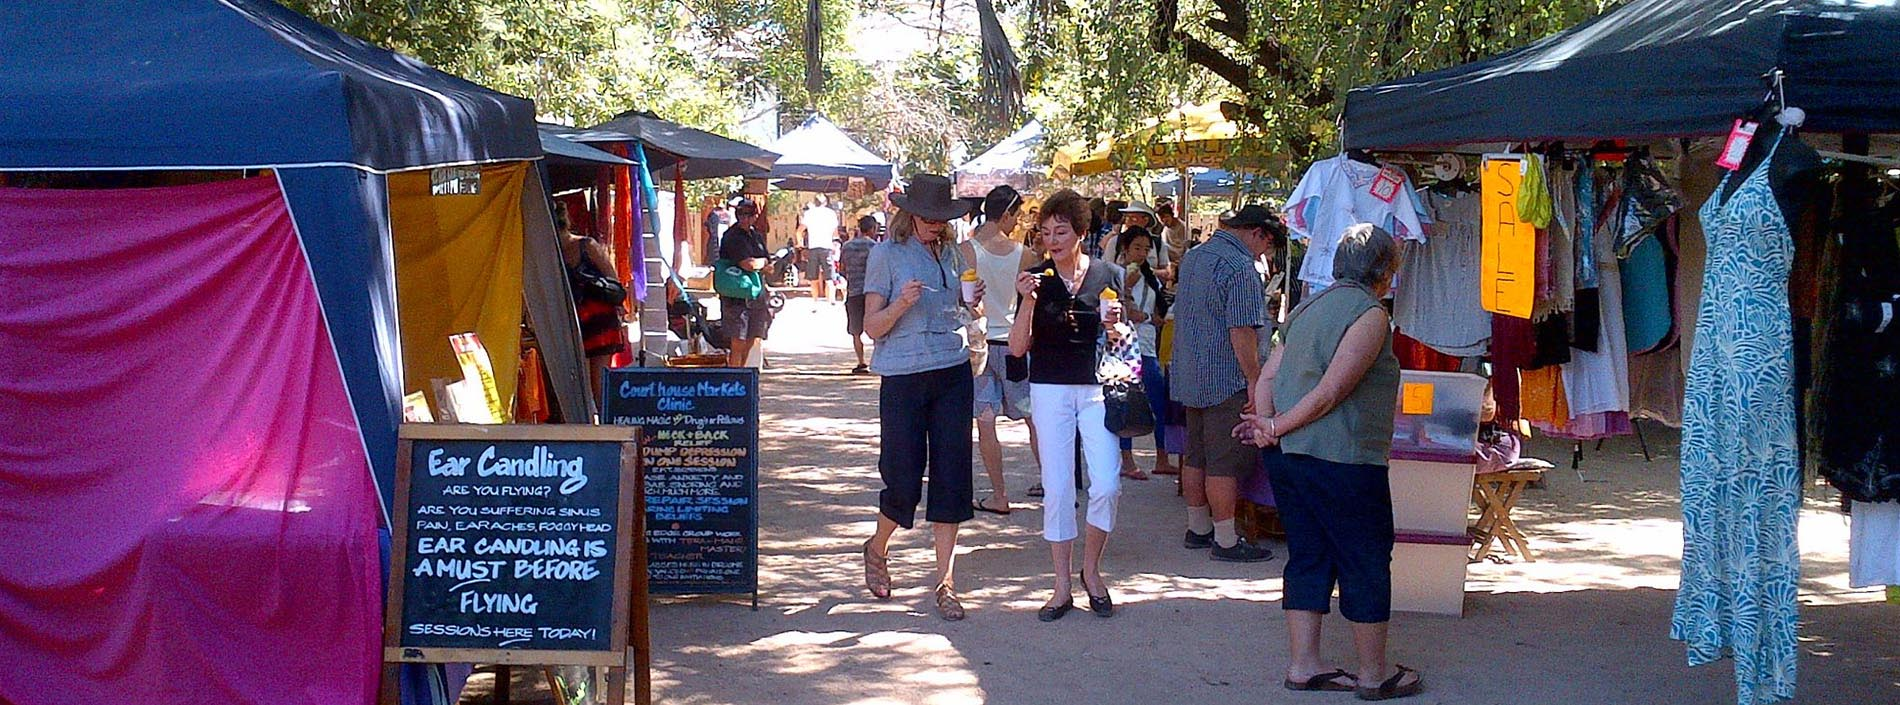 Travis Broome Guide - Shopping at the Courthouse Markets